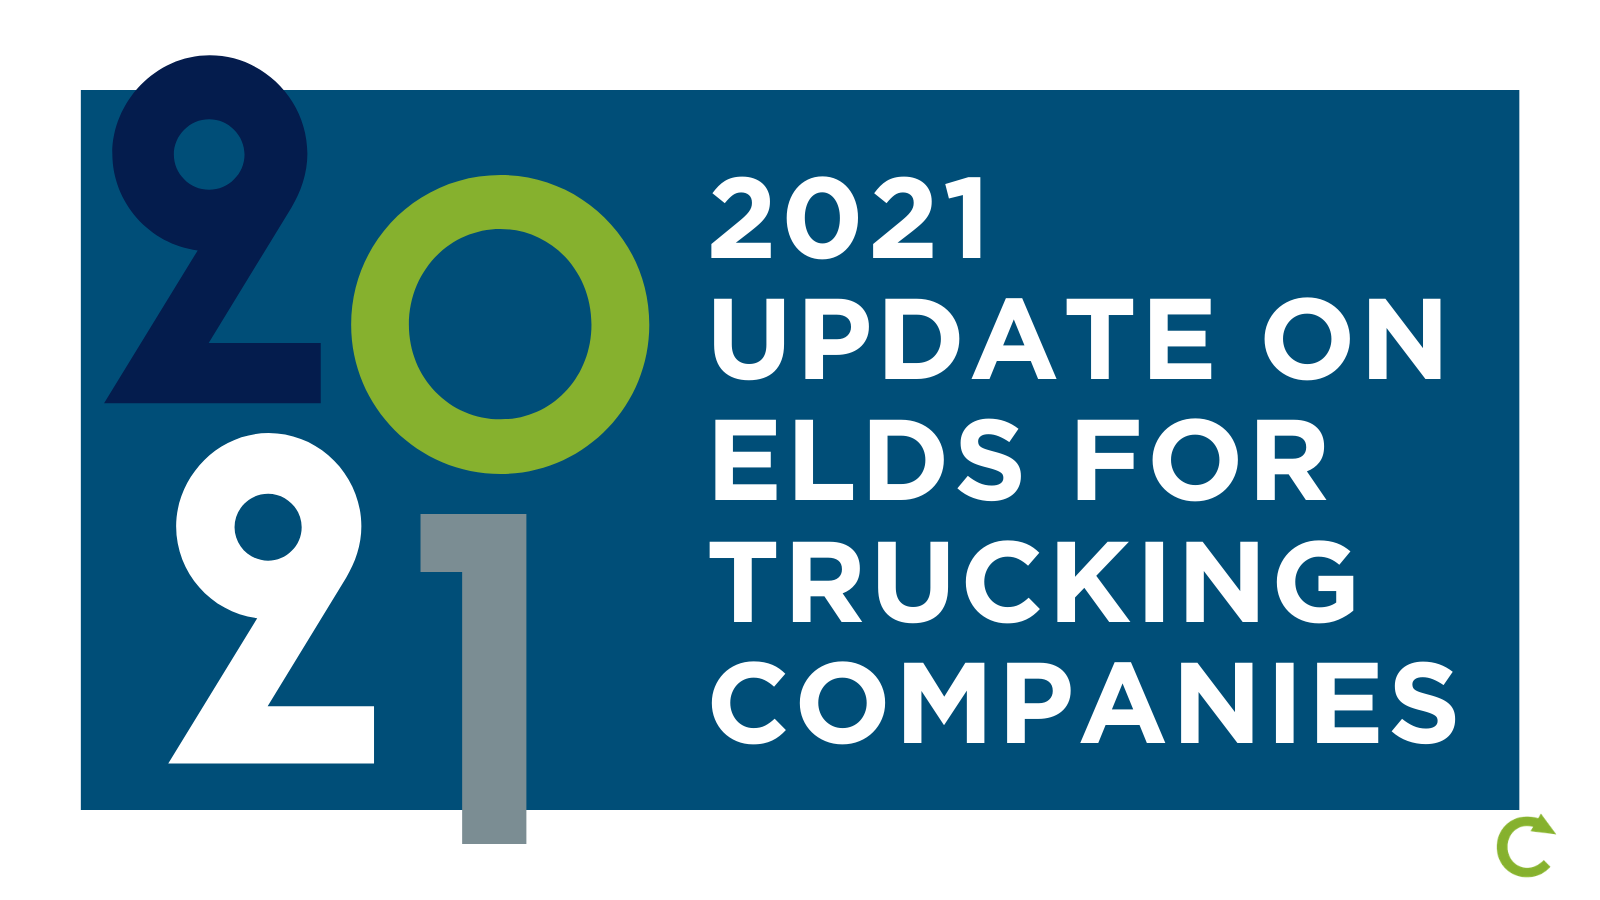 2021 Update On ELDs For Trucking Companies